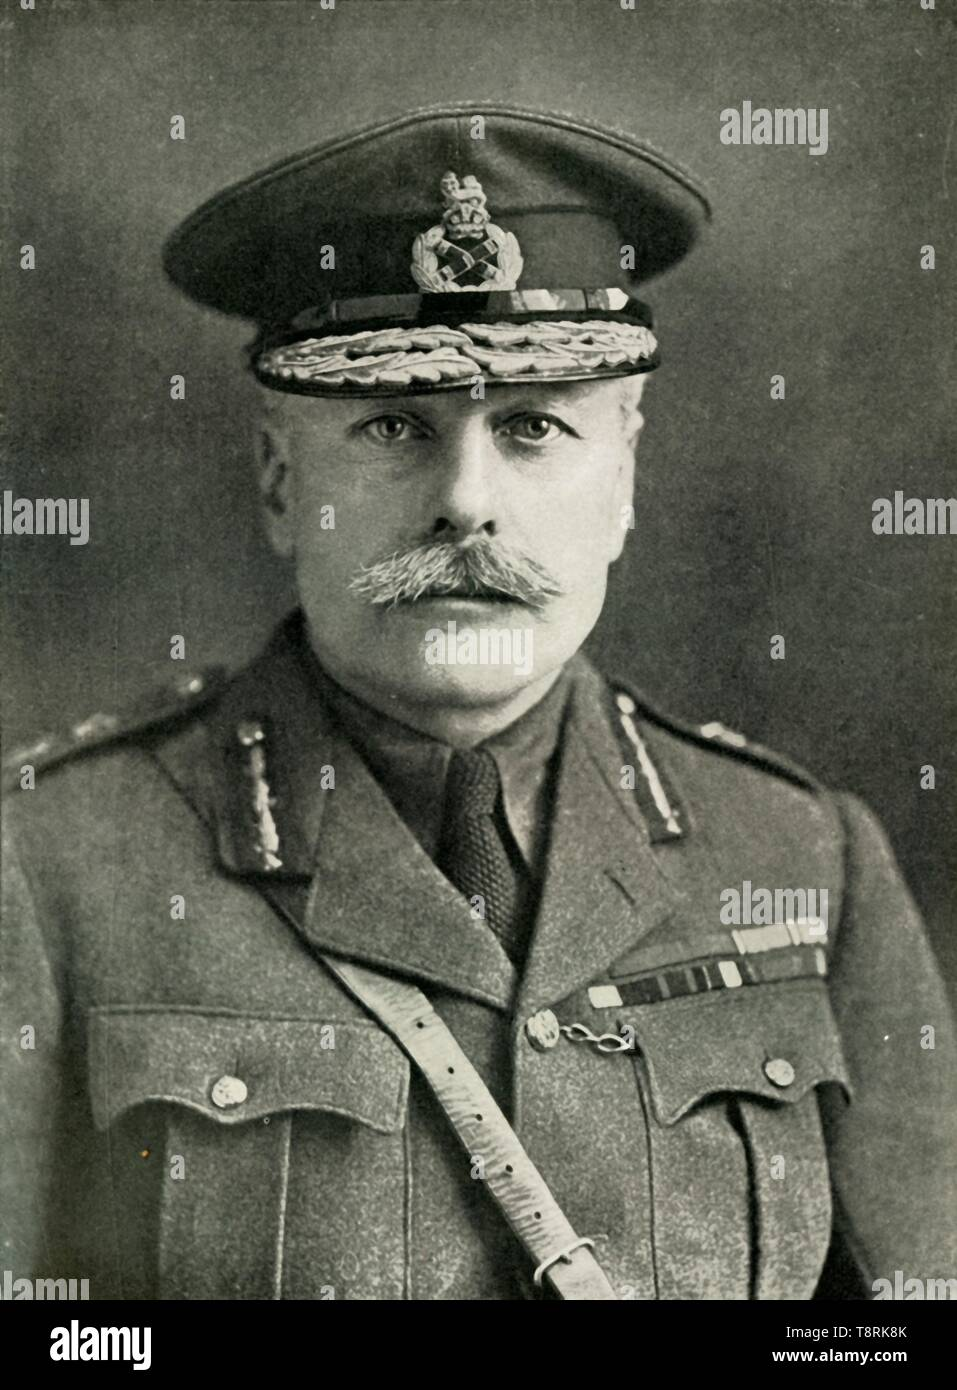 'Field-Marshal Earl Haig', 1910s, (1919). Portrait of Field Marshal Douglas Haig, British soldier and senior commander during World War I. Haig (1861-1928) was commander of the 1st Army Corps of the British Expeditionary Force (BEF) at the outbreak of the war. His troops fought with distinction at Mons and the First Battle of Ypres. In 1915 Haig was promoted to Commander in Chief of the BEF, a post he held until the end of the war. His conduct of the war on the Western Front was controversial. On the one hand, his pursuit of a strategy of attrition and planning of offensives which ultimately m - Stock Image